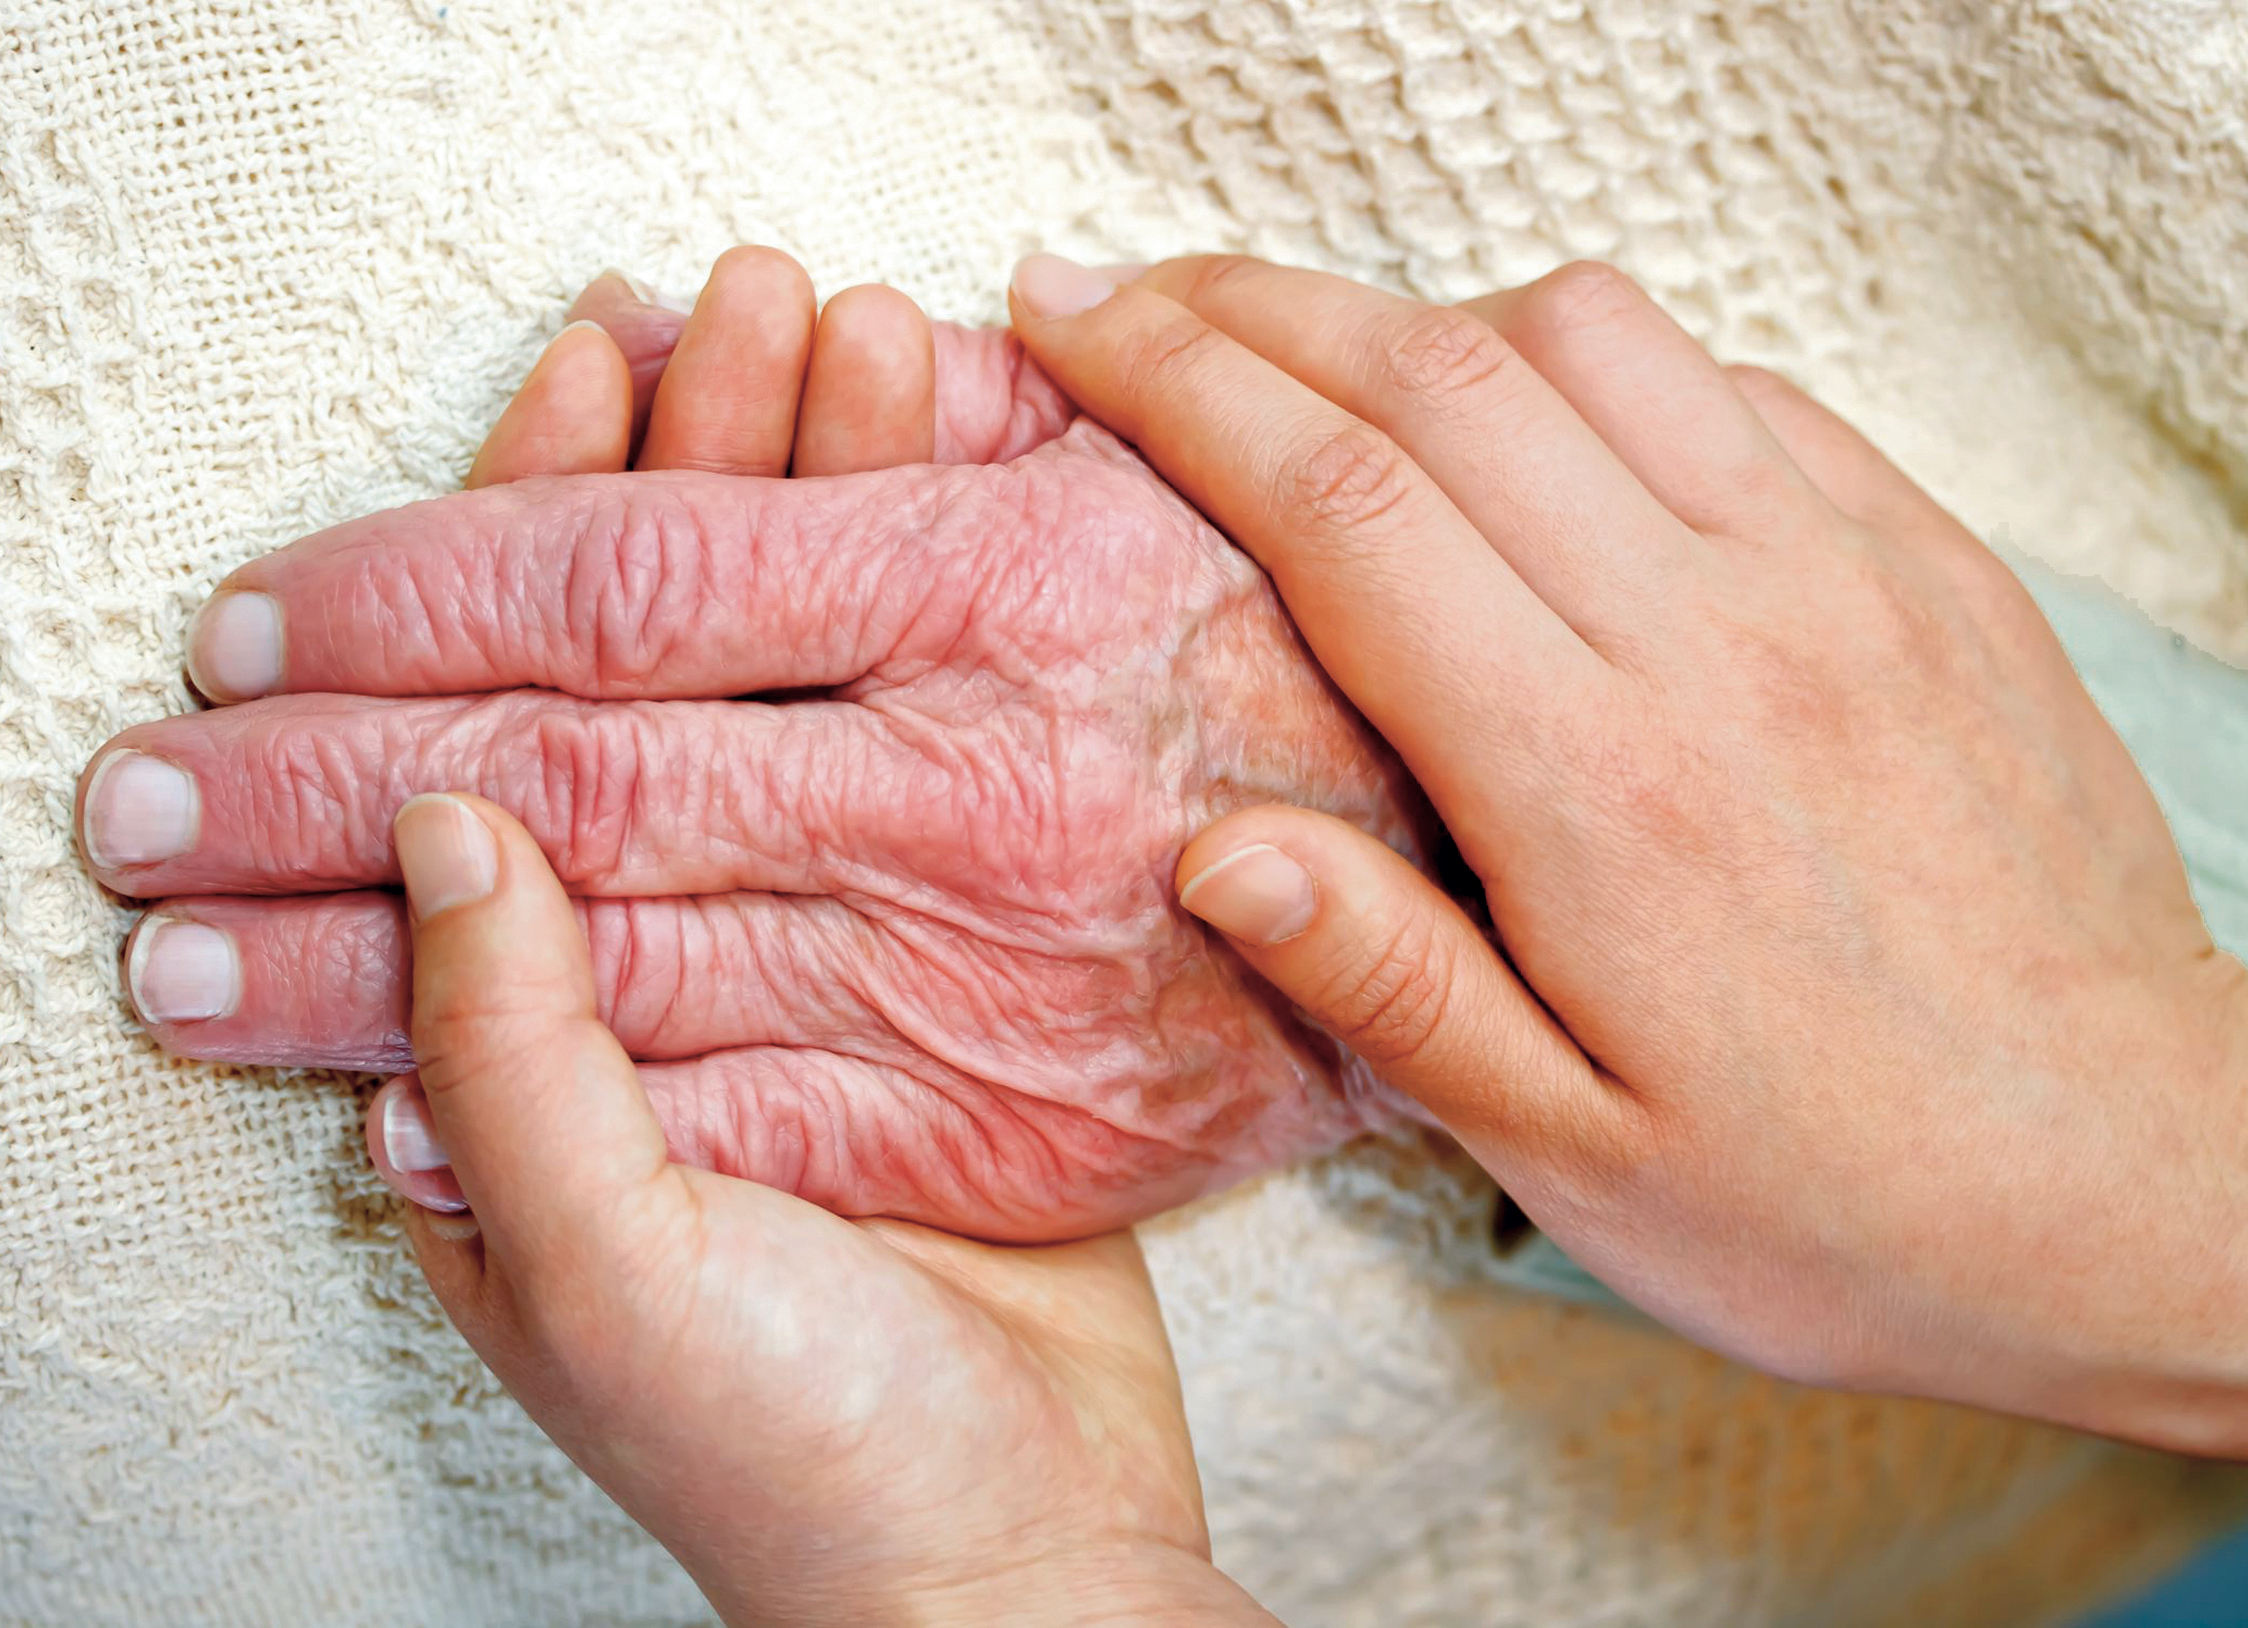 Compassion and care at the end of life